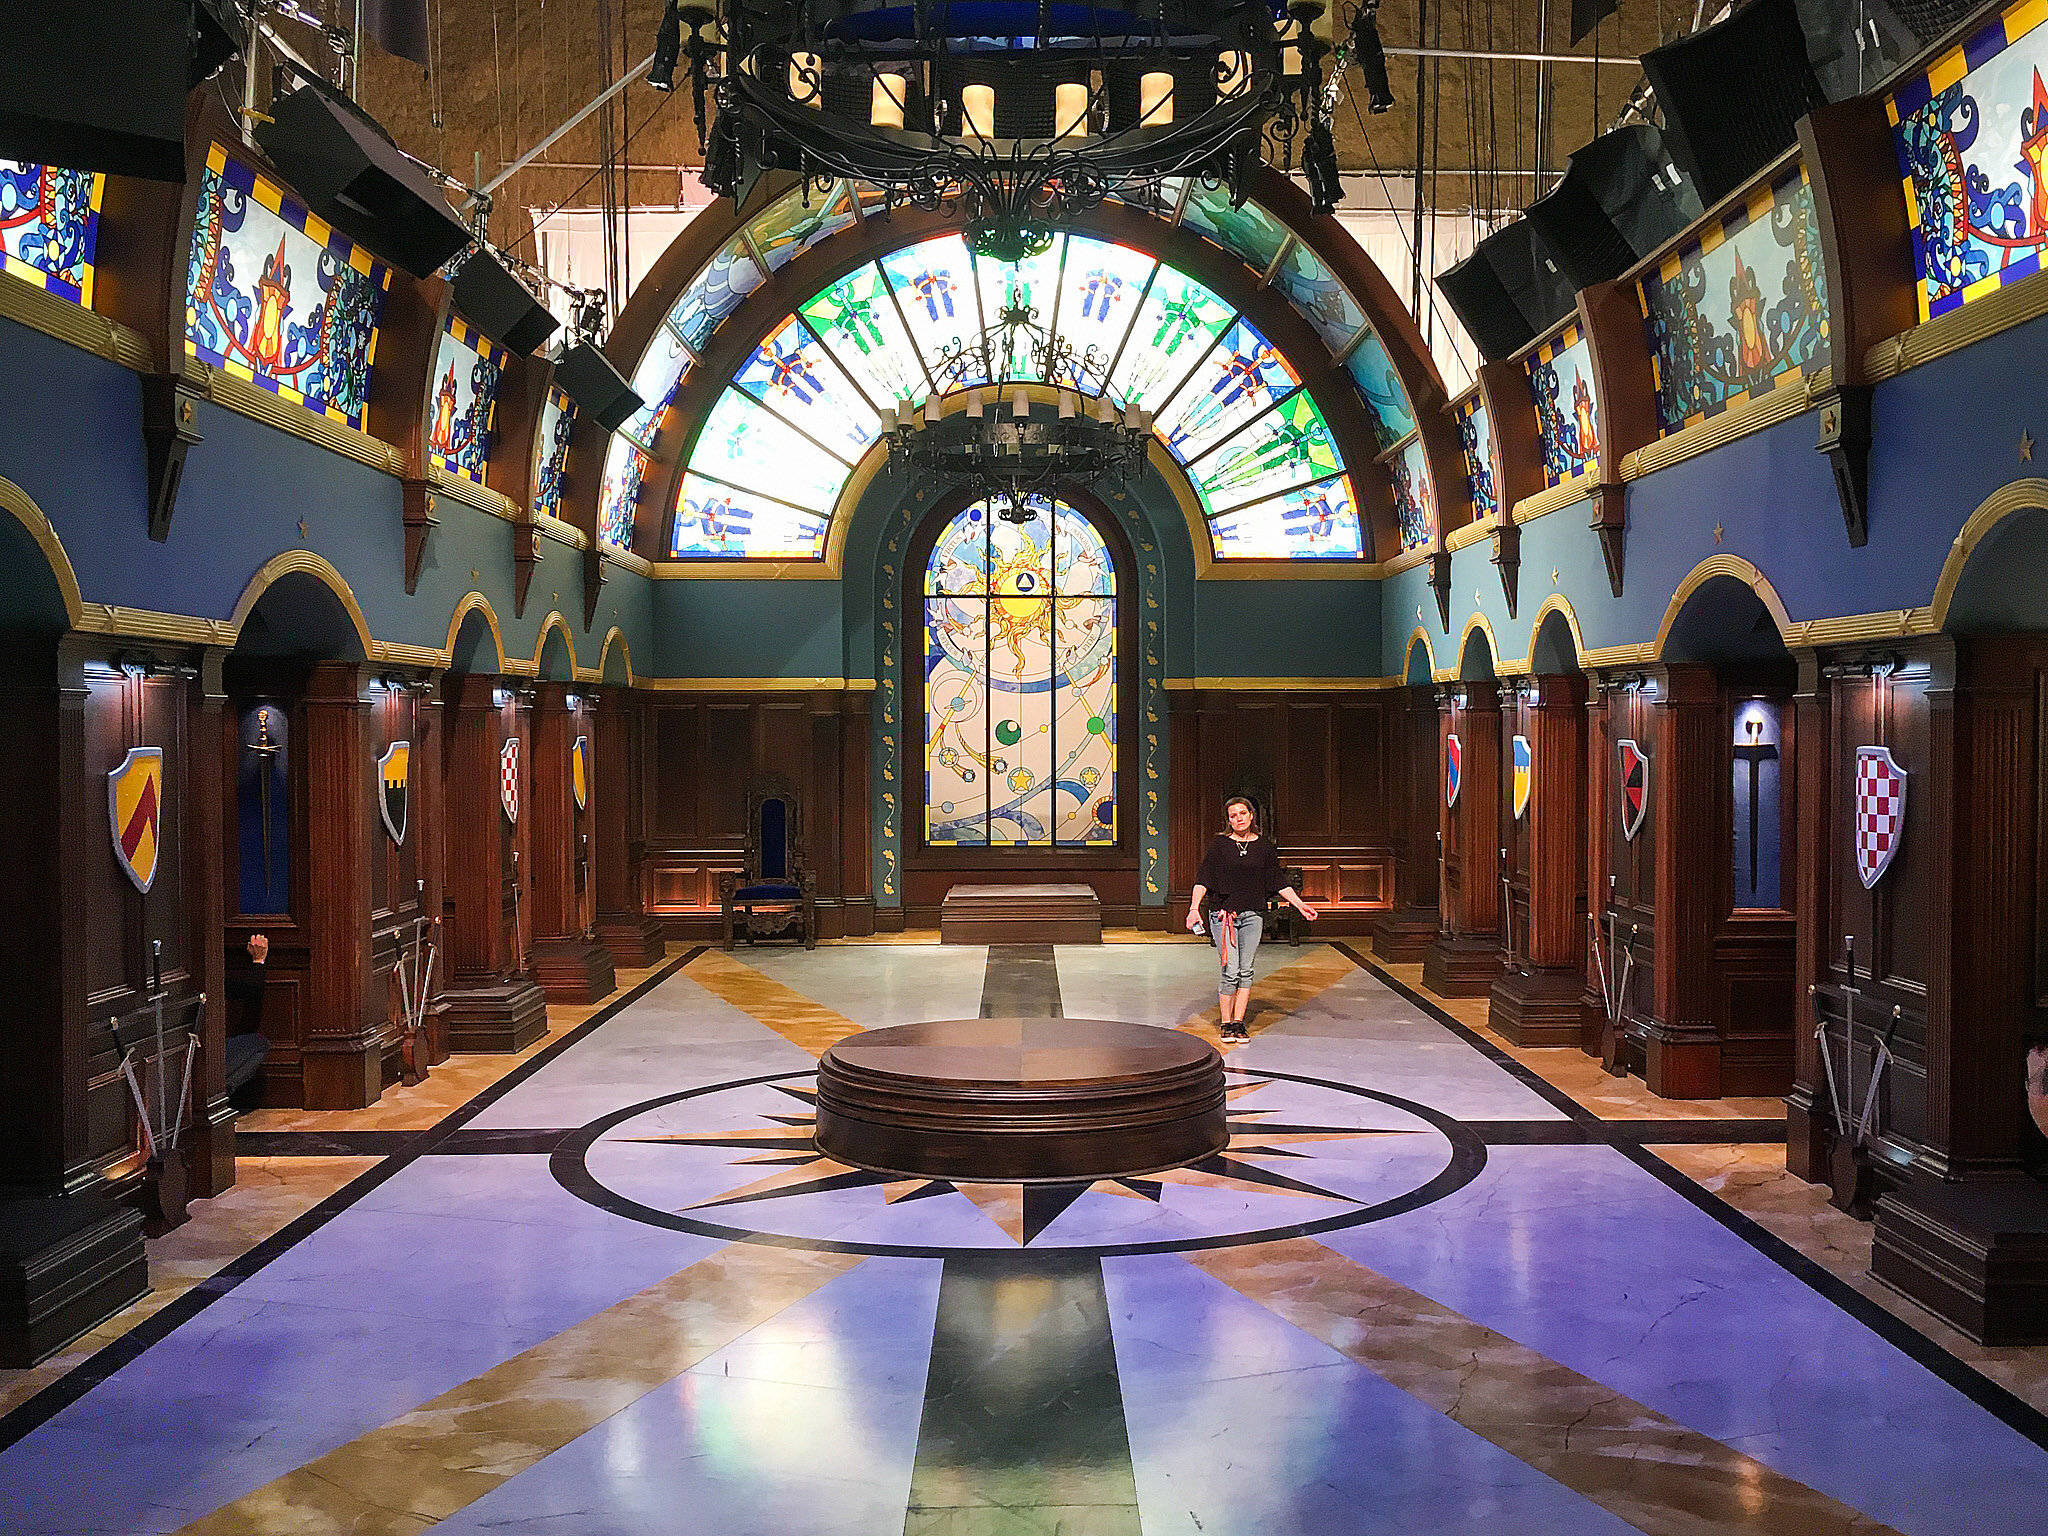 Disney's Descendants 3 takes place in both the wretched Isle of the Lost and the enchanted, perfected kingdom of Auradon. This is the armory in Auradon's royal palace. It houses a collection of armor and weapons (not pictured) that good-girl turned evil sorceress Audrey (Sarah Jeffrey) brings to life to fight our heroes in musical combat. We built this broad hall encased in stained glass.